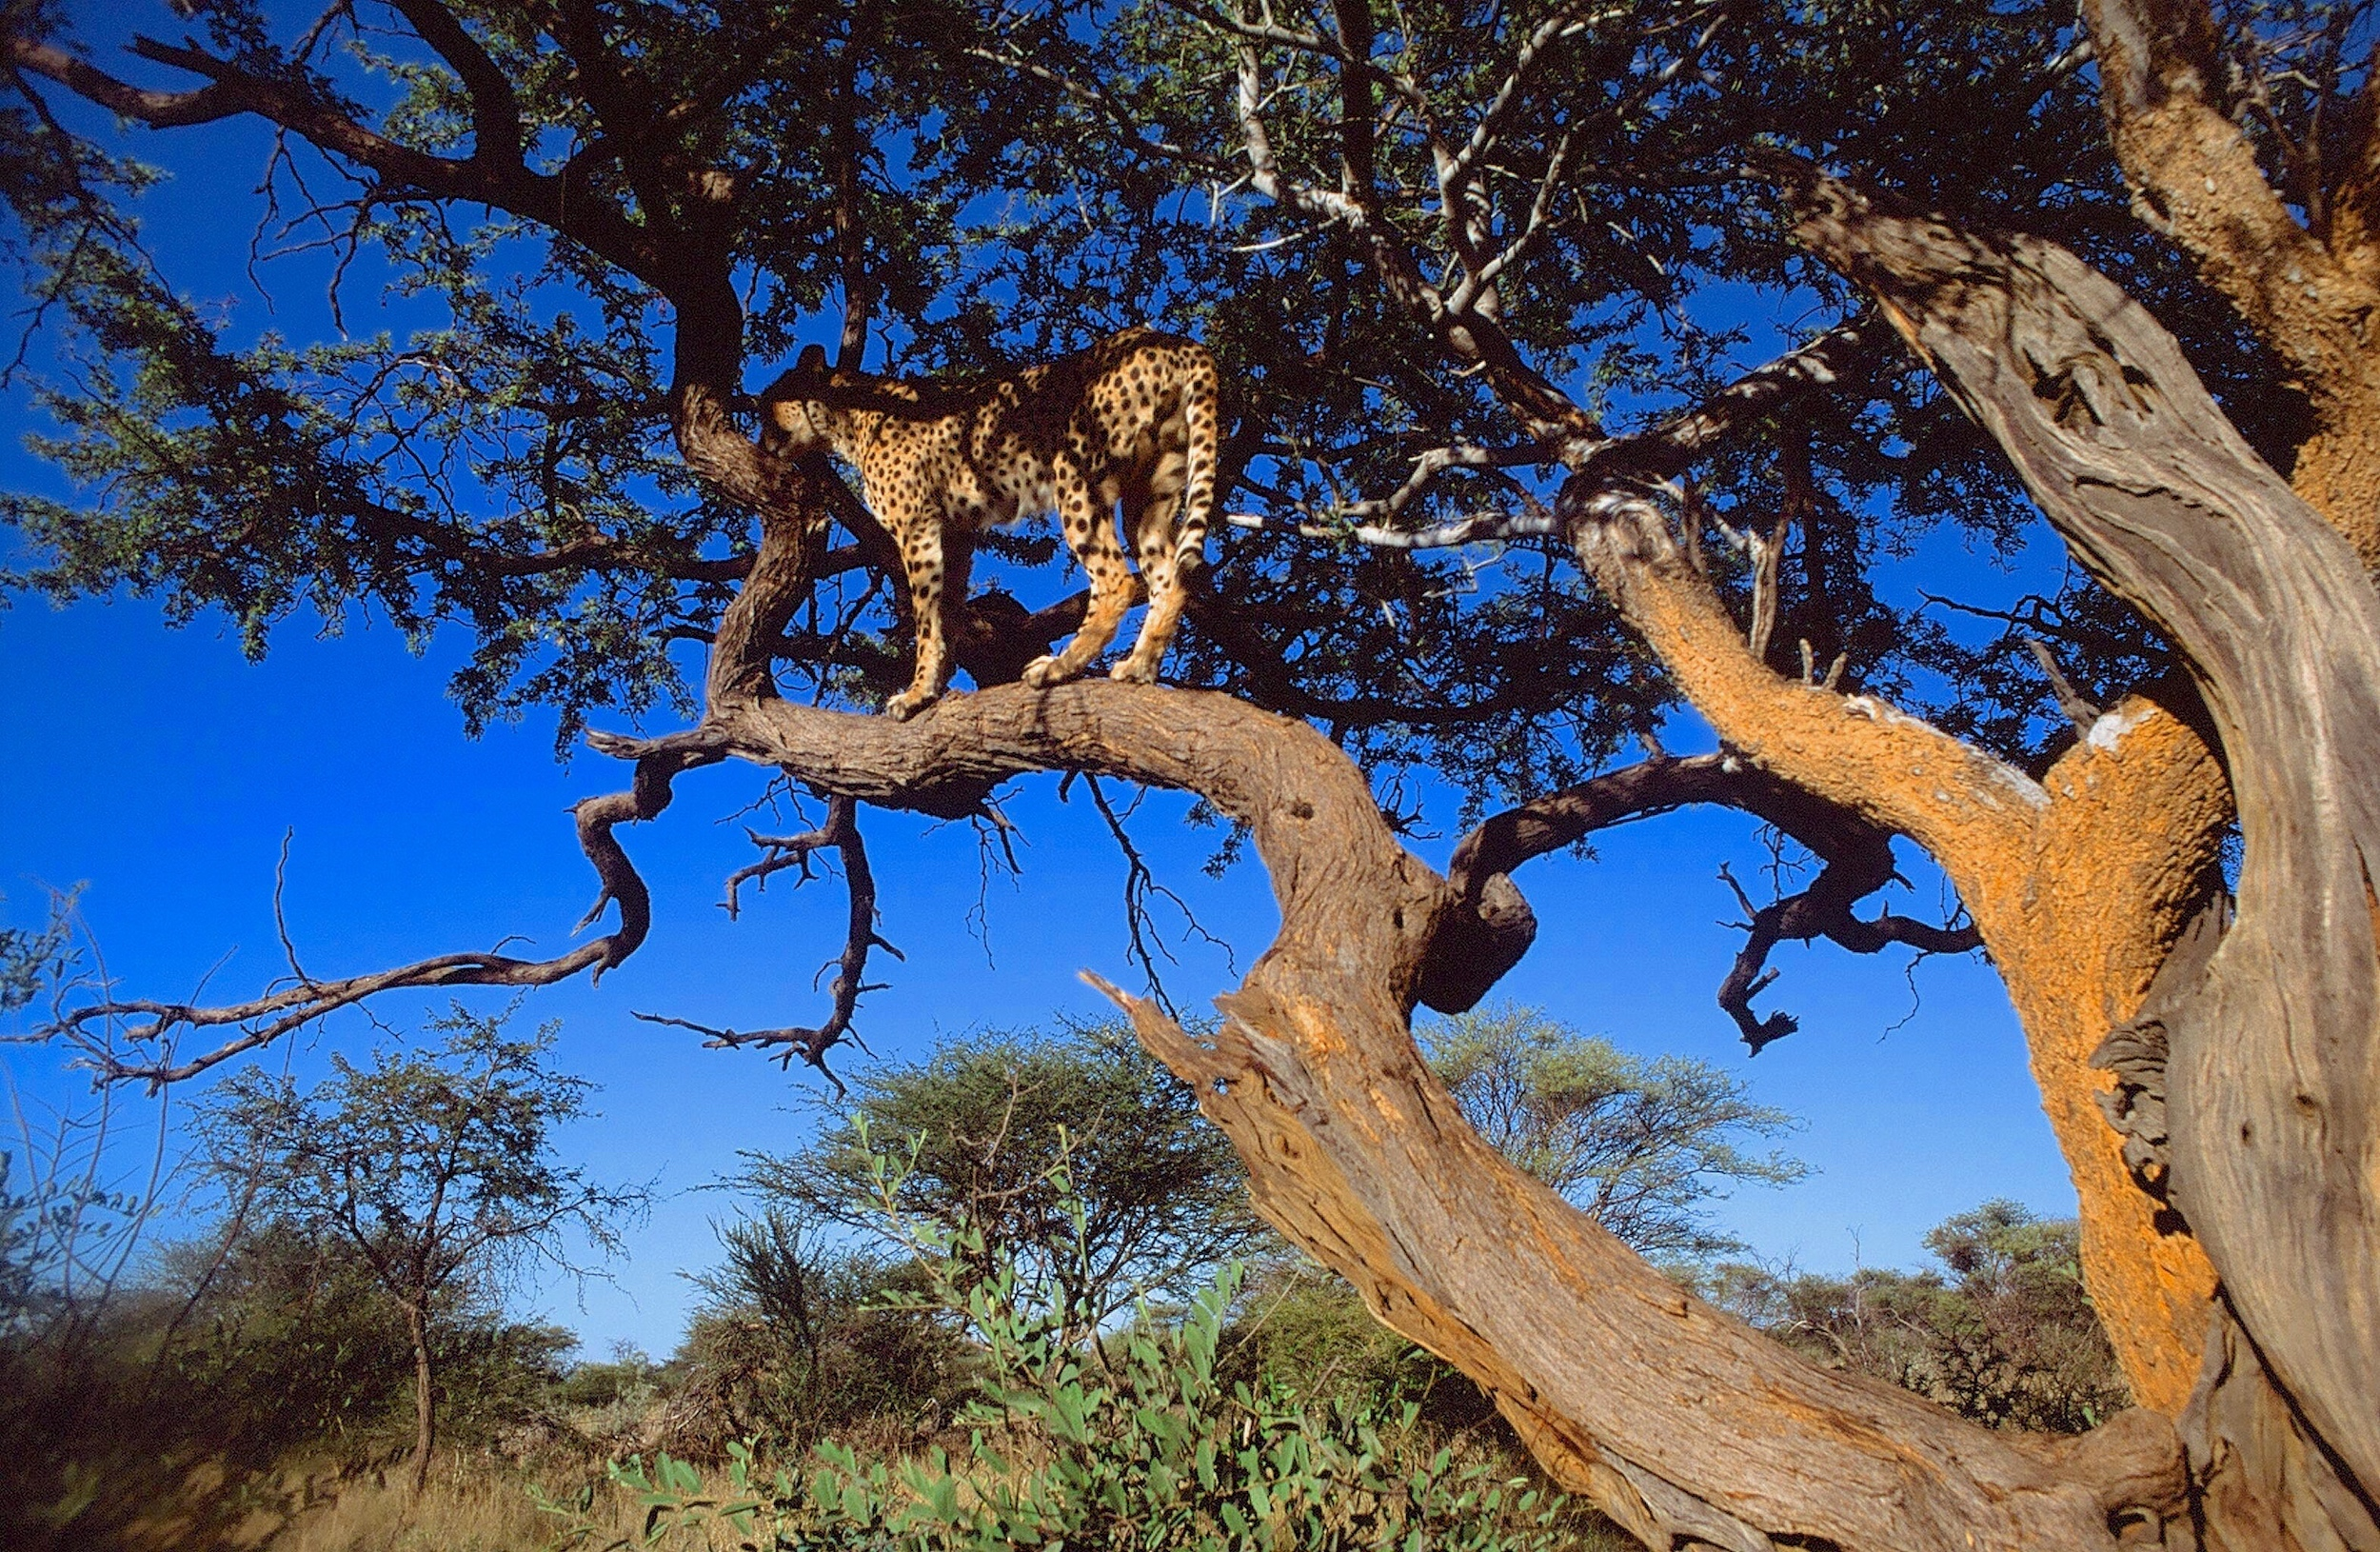 Cheetah tree, used for marking territory. All photos ©Alex Strachan